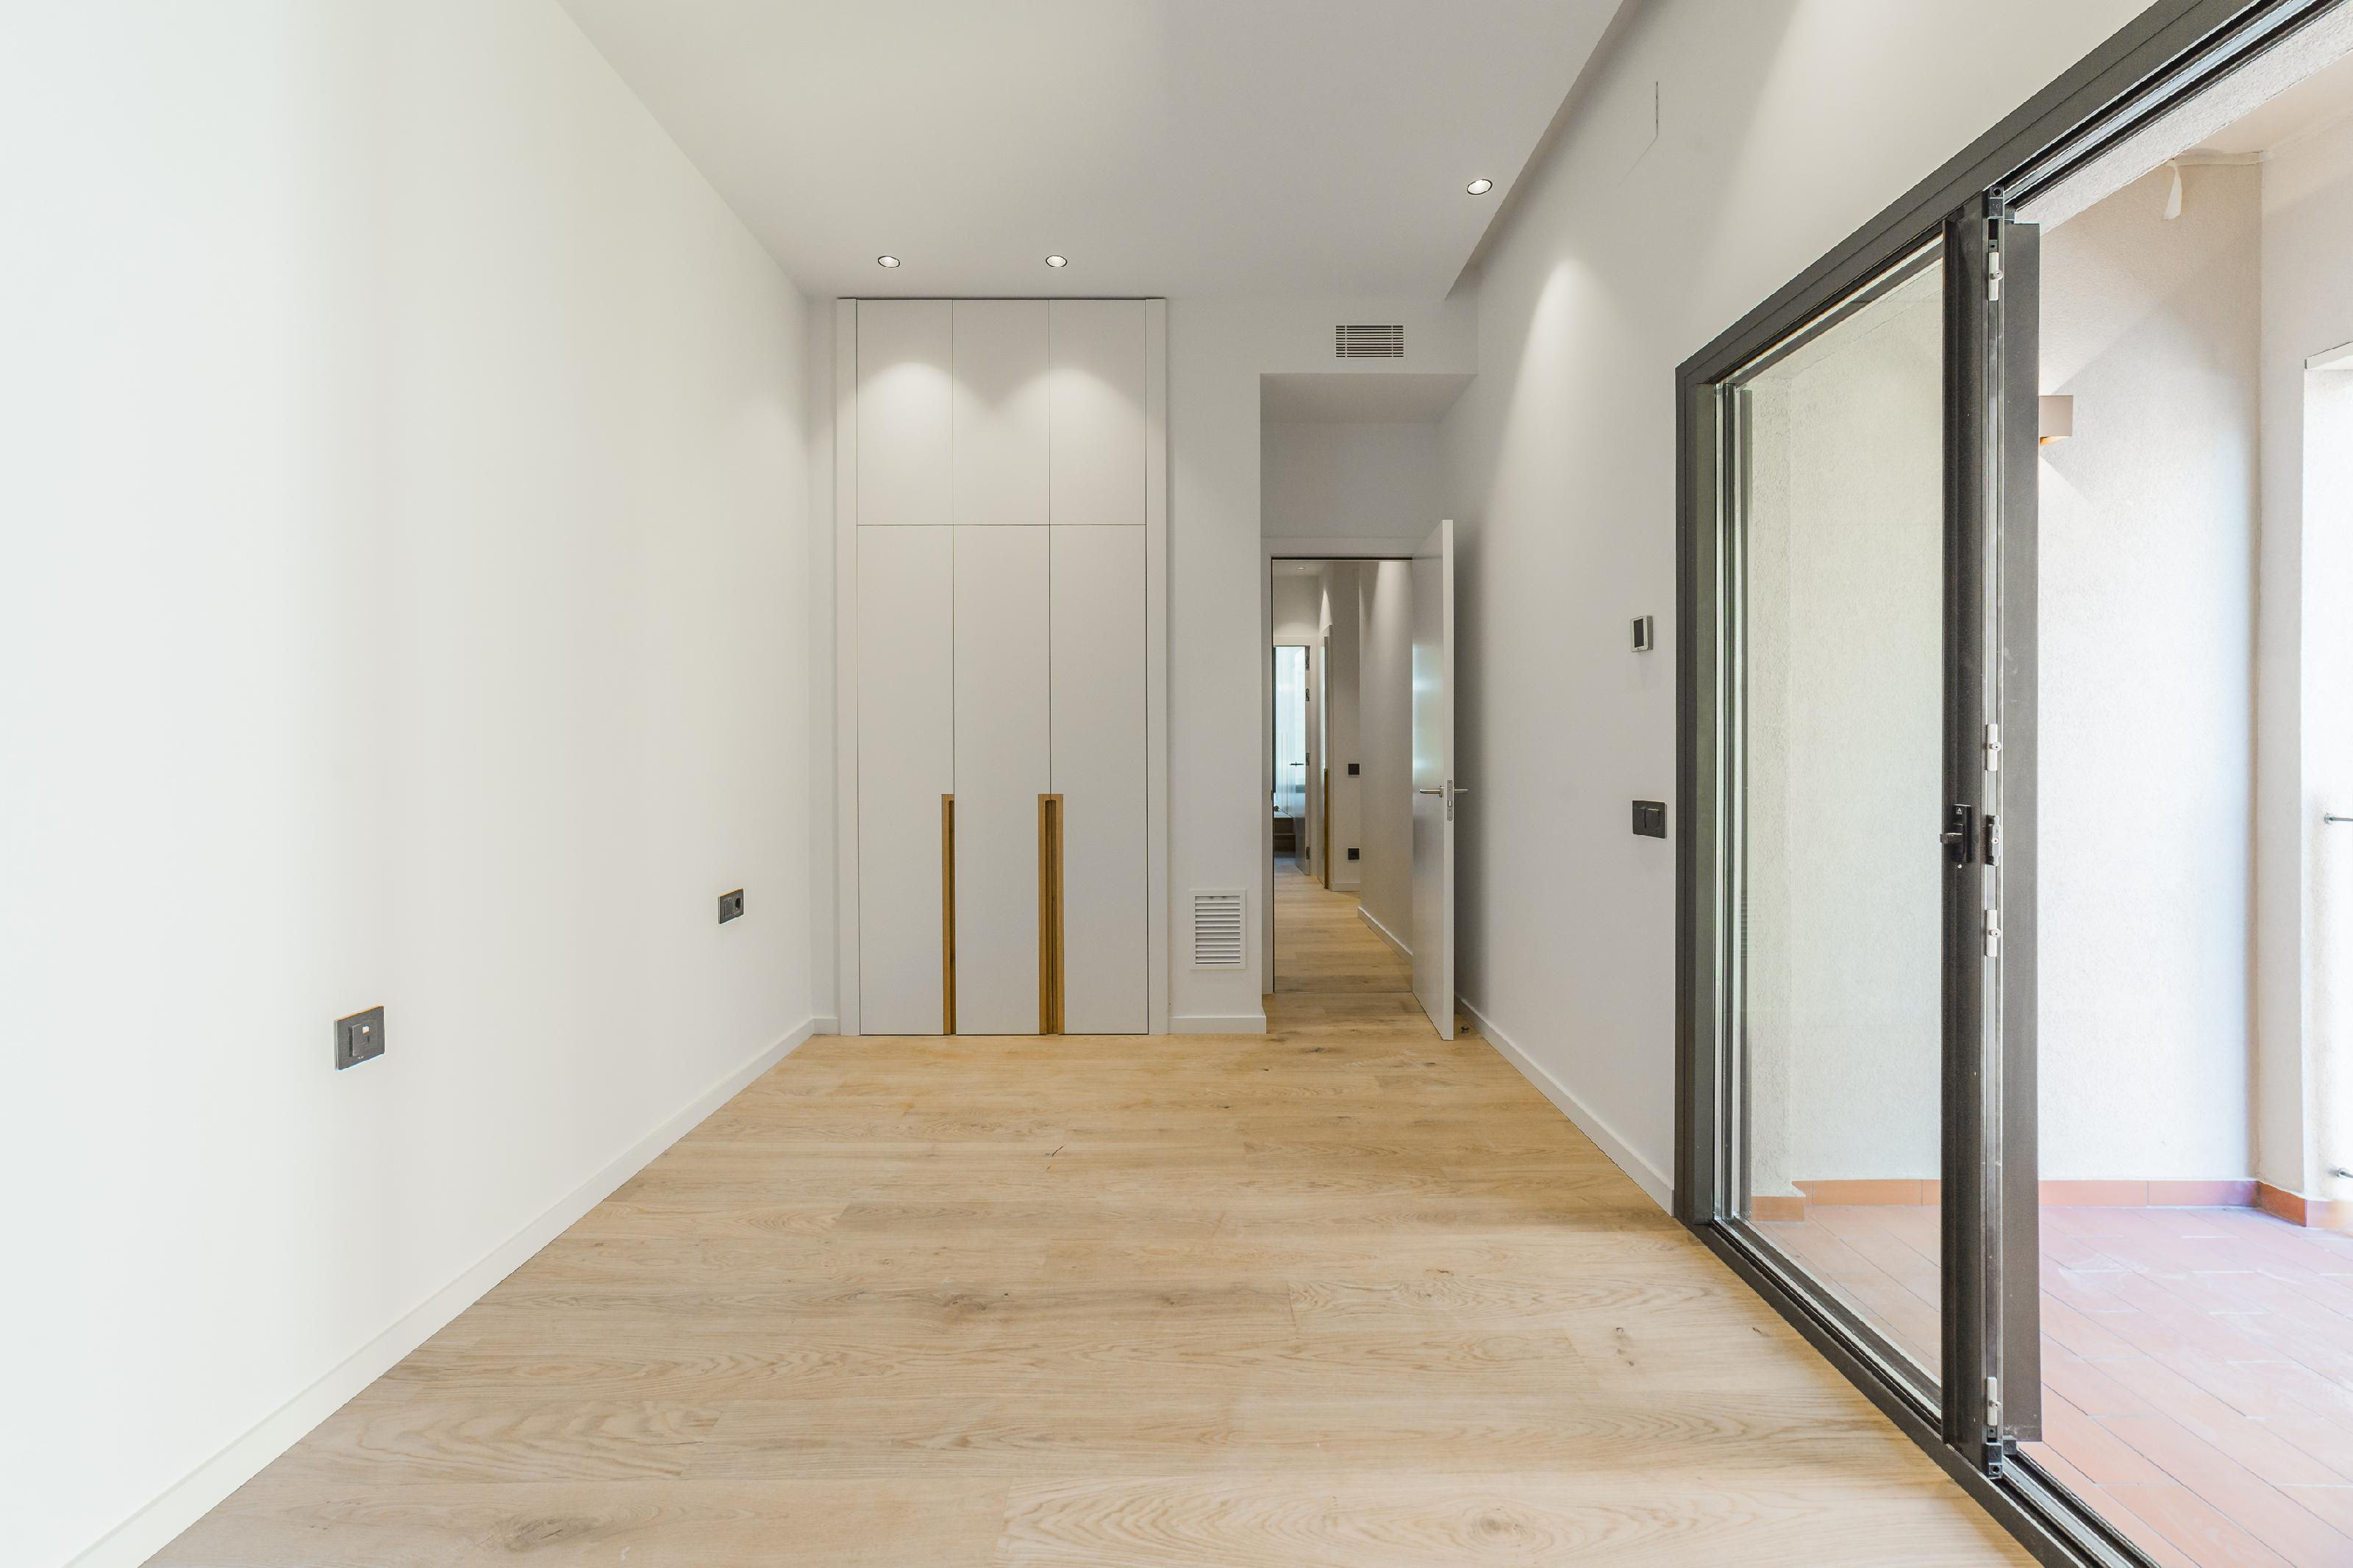 182474 Apartment for sale in Eixample, Old Left Eixample 24